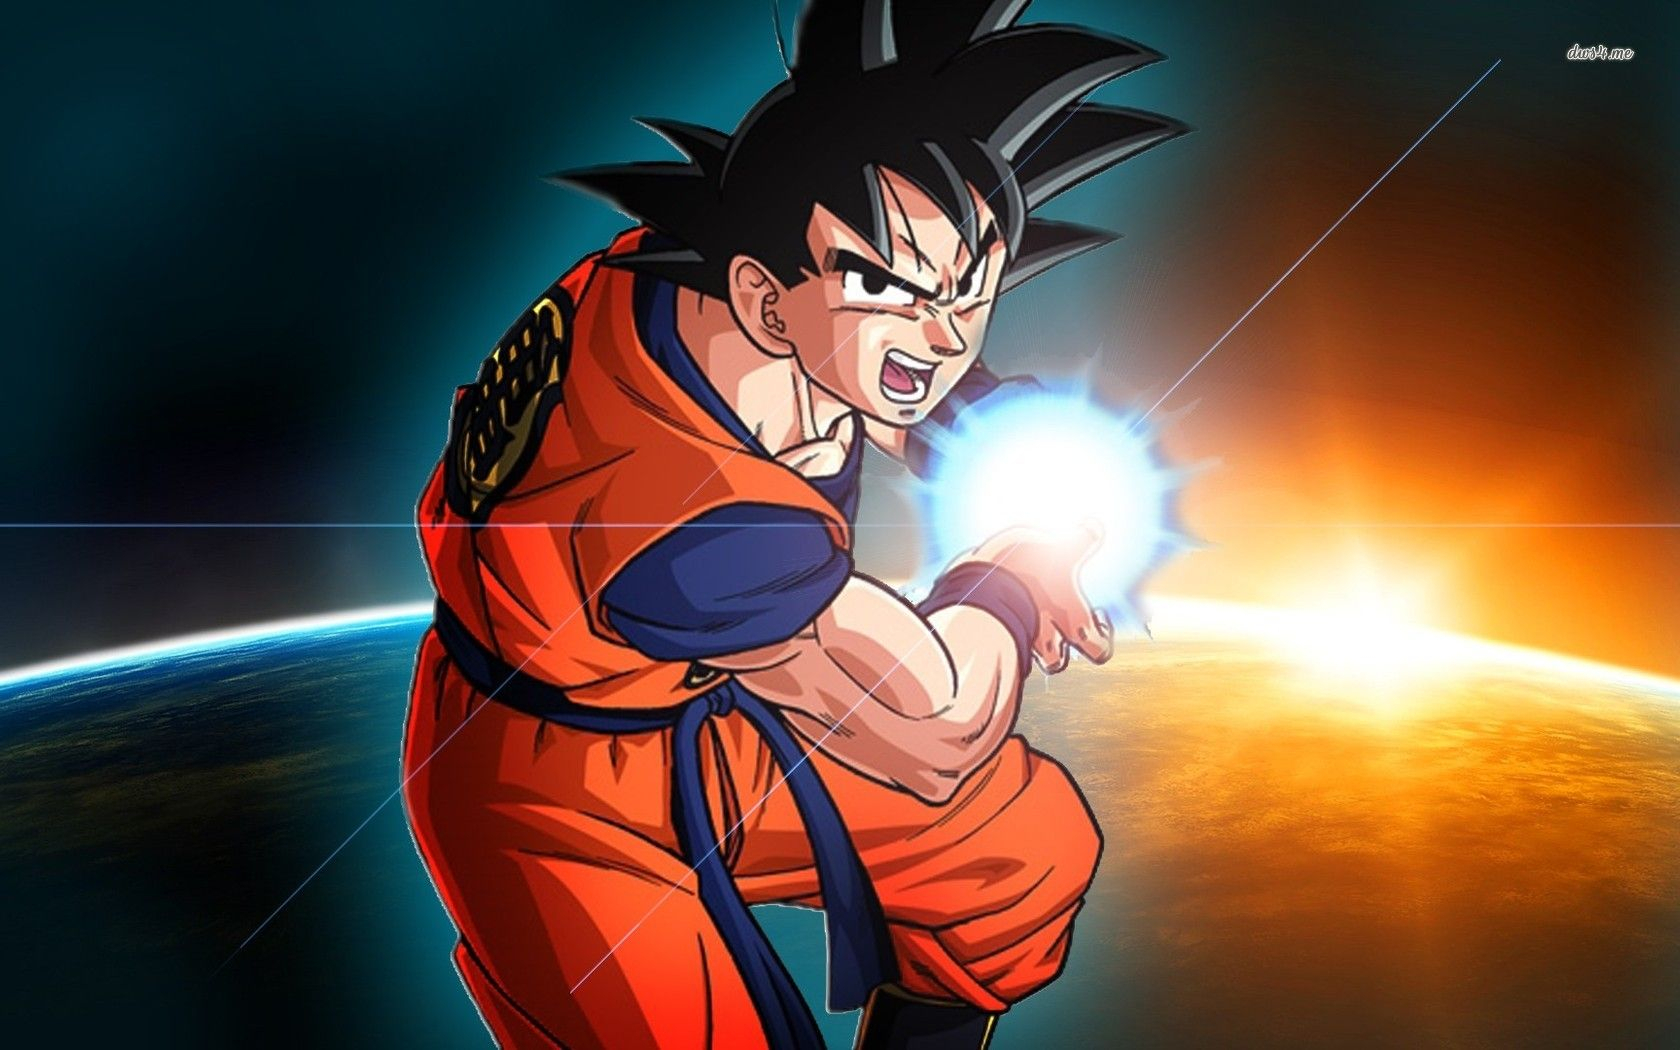 dragon ball z wallpapers goku - sf wallpaper